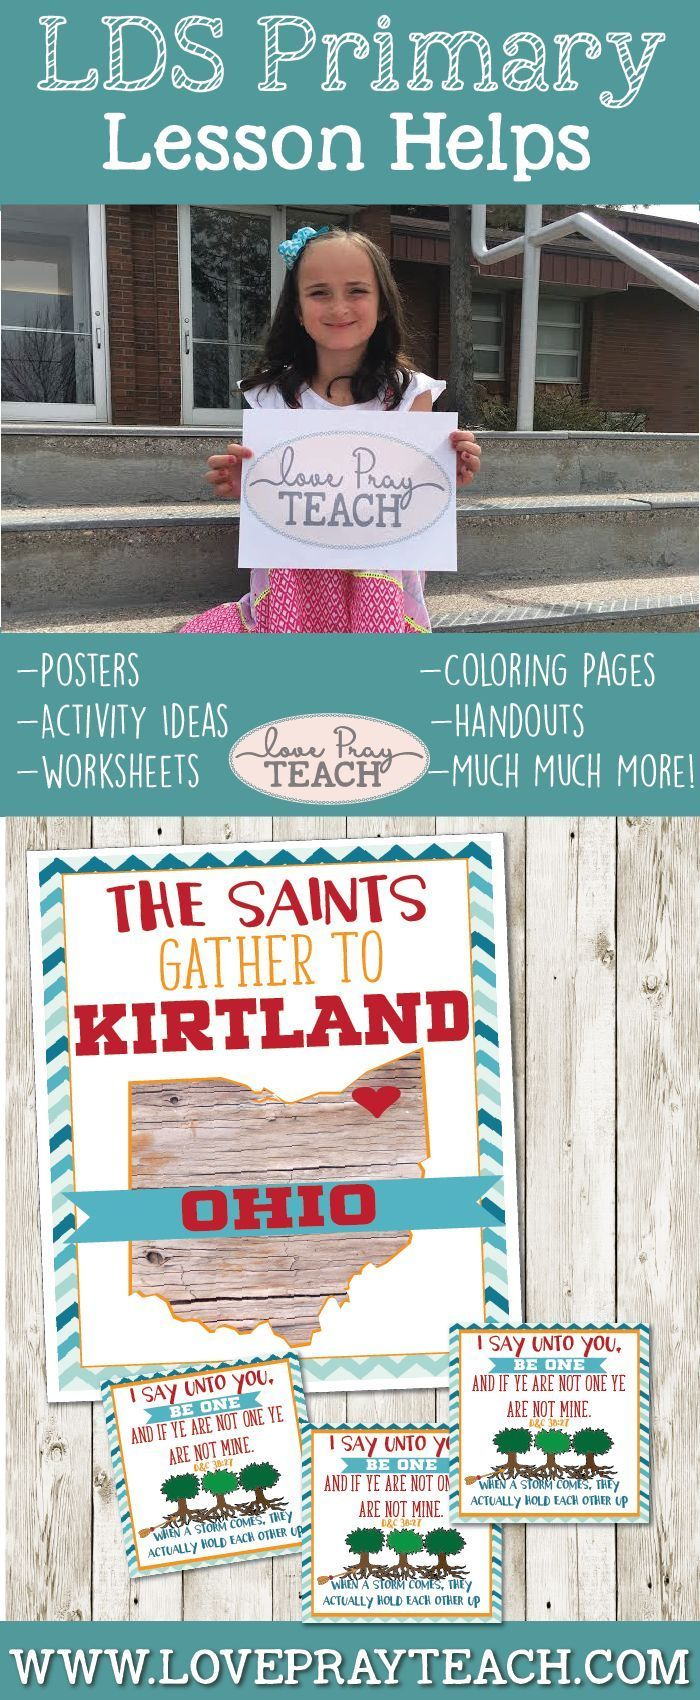 LDS PRIMARY HELPS! Presidency Helps - Sharing Time Packets, Monthly Posters, Bulletin Board decorations, binder covers and more! Teacher Packets - Sunbeam, CTR, and Valiant lesson packets for every lesson! #CTR #VALIANTLESSONS #LDSPRIMARY #CHOOSETHERIGHT #LDSPRINTABLES #VALIANT #CTRHELPS